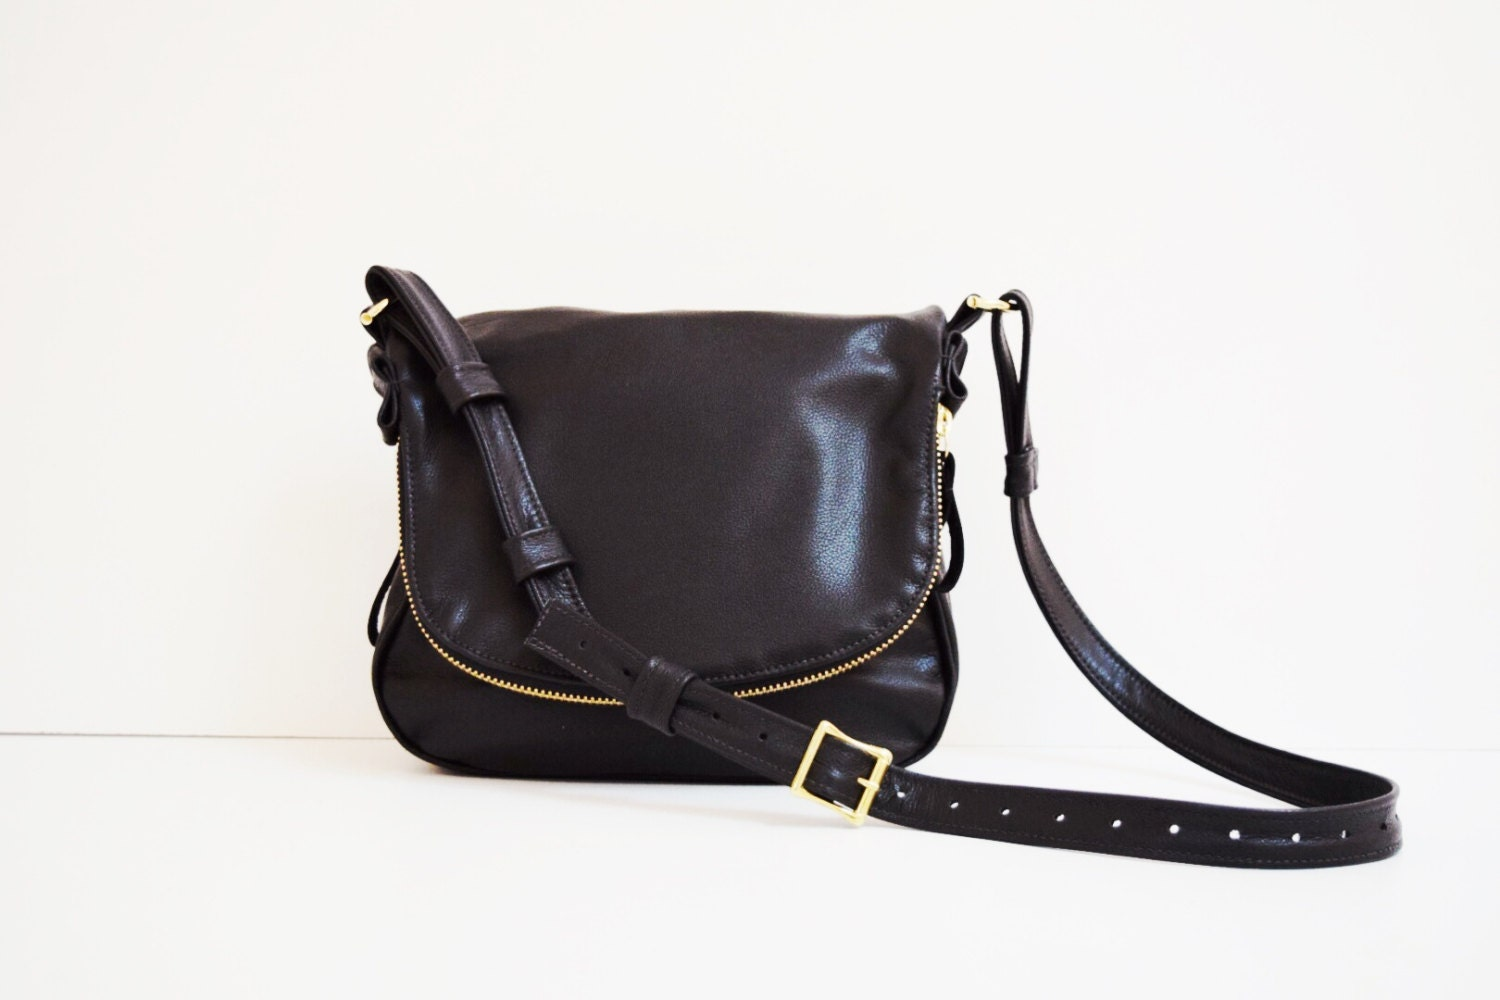 0f3722b35b7d Black Leather Purse With Zippers | Stanford Center for Opportunity ...